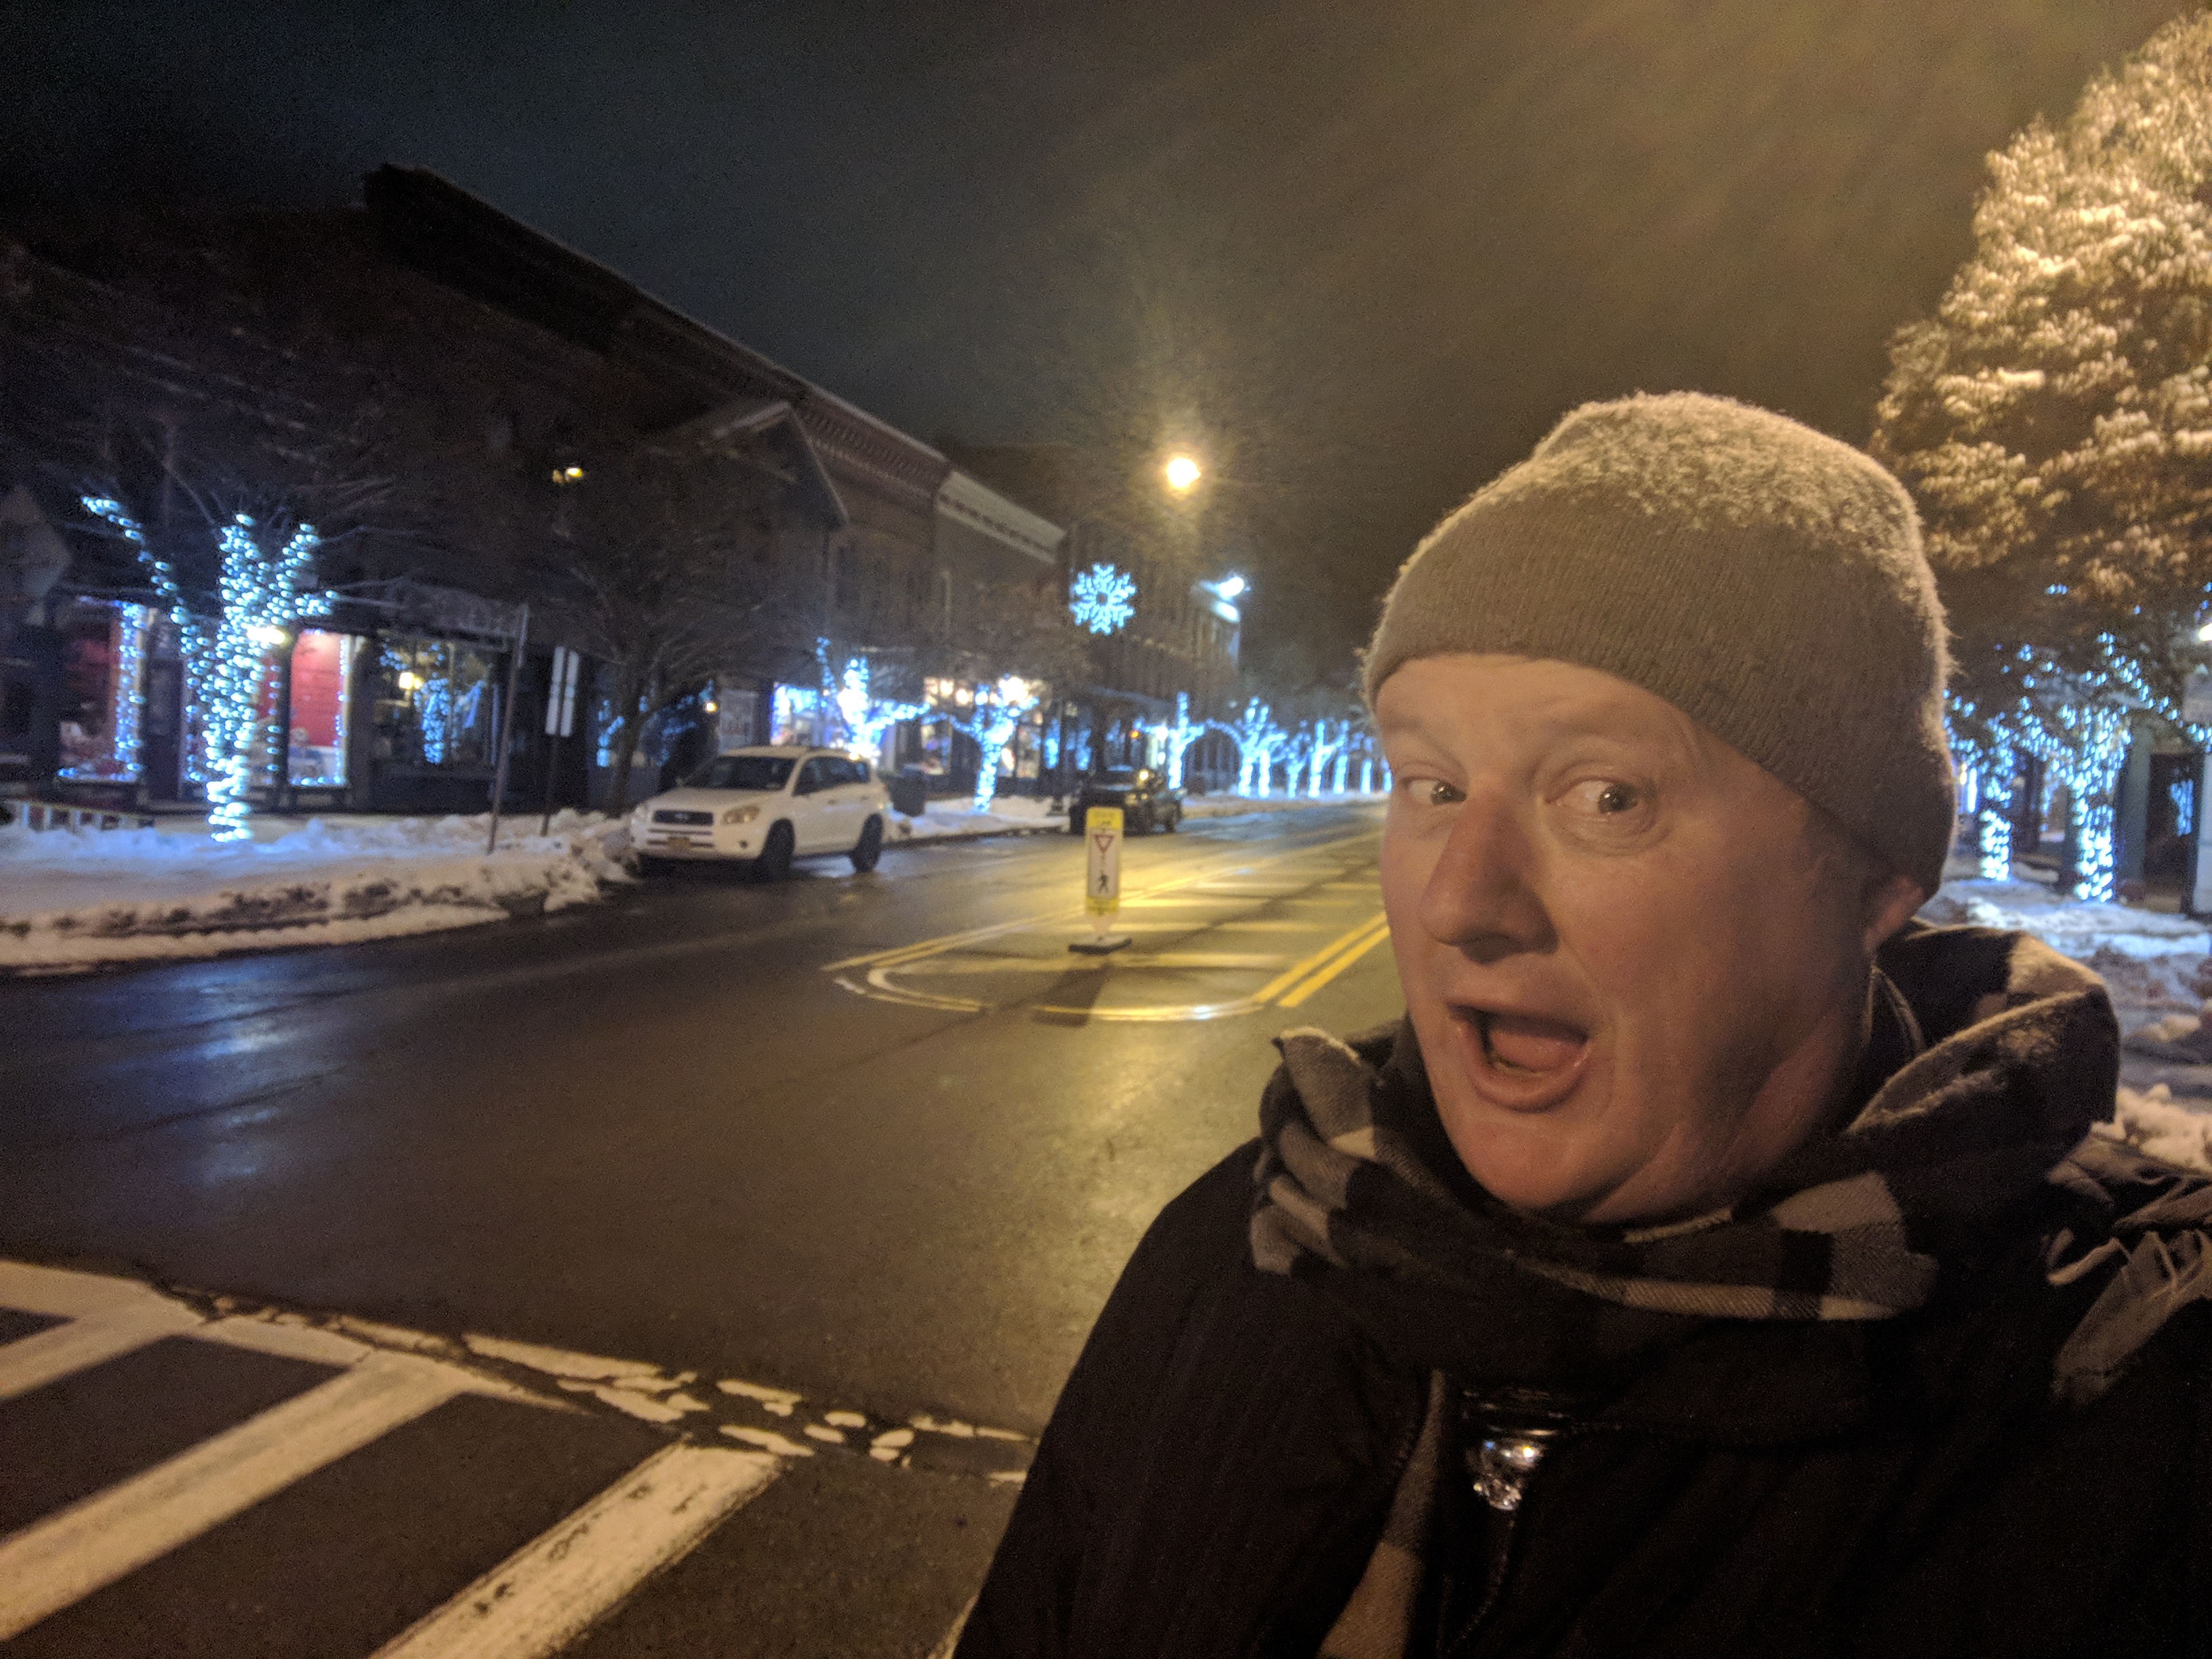 Photos: Holiday lights in Ellicottville, New York